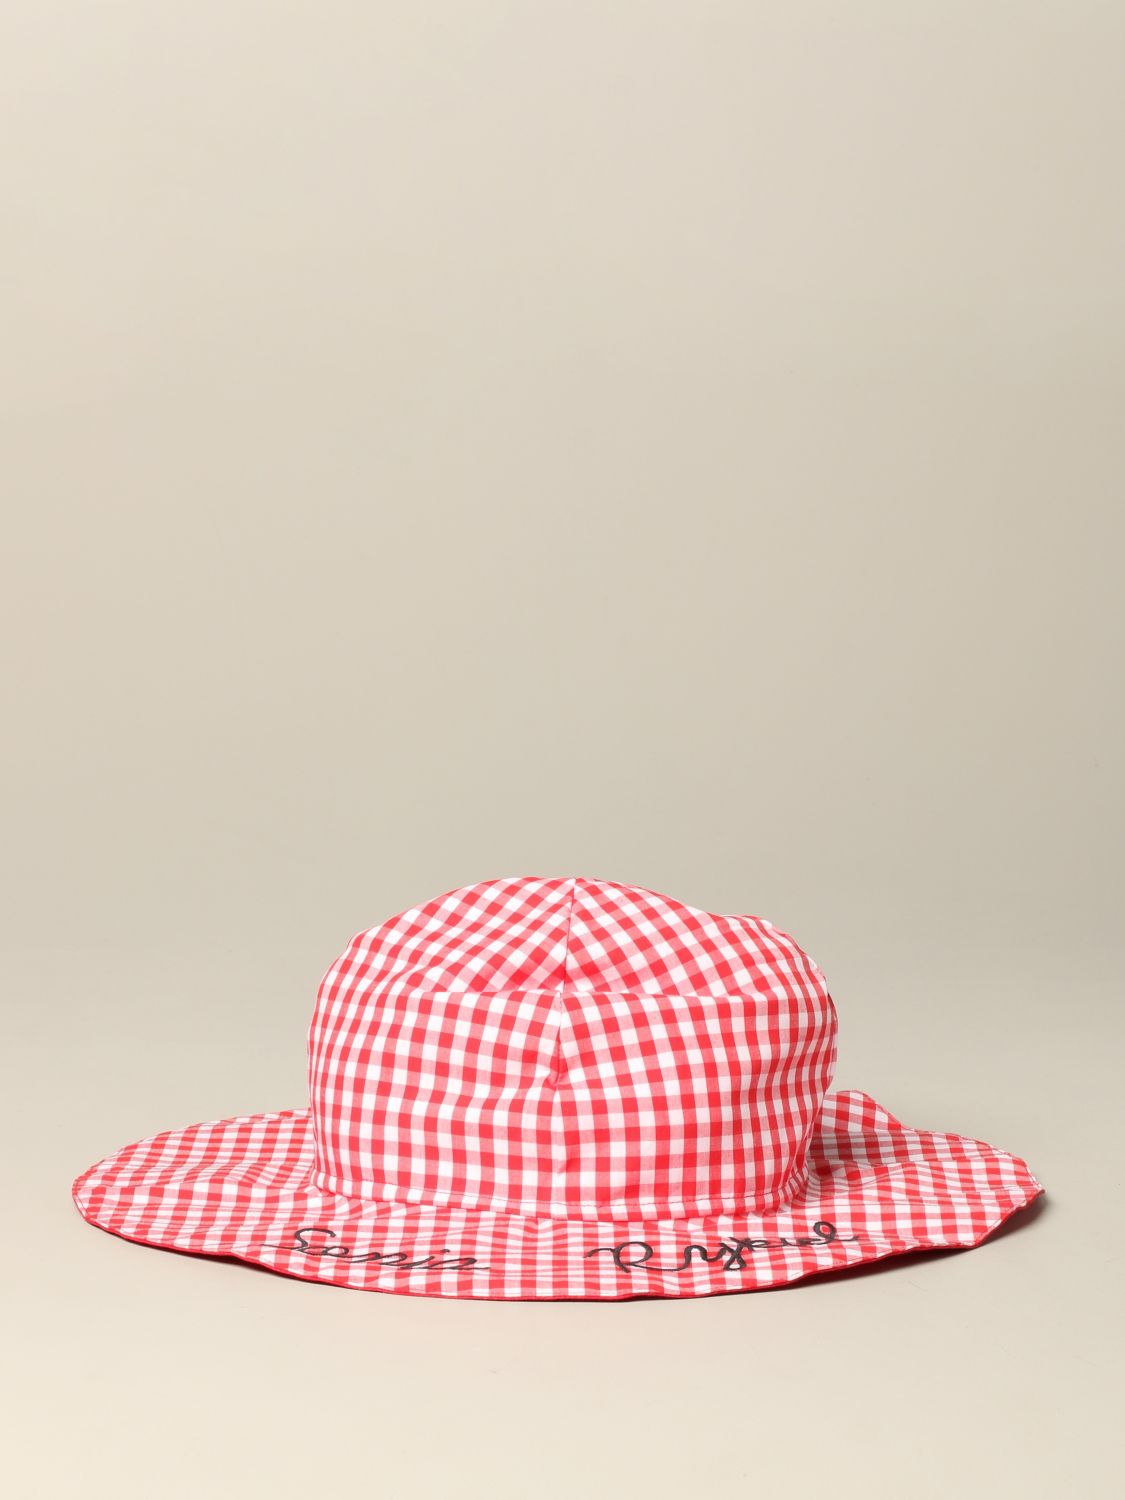 Sonia Rykiel checkered hat with logo red 2